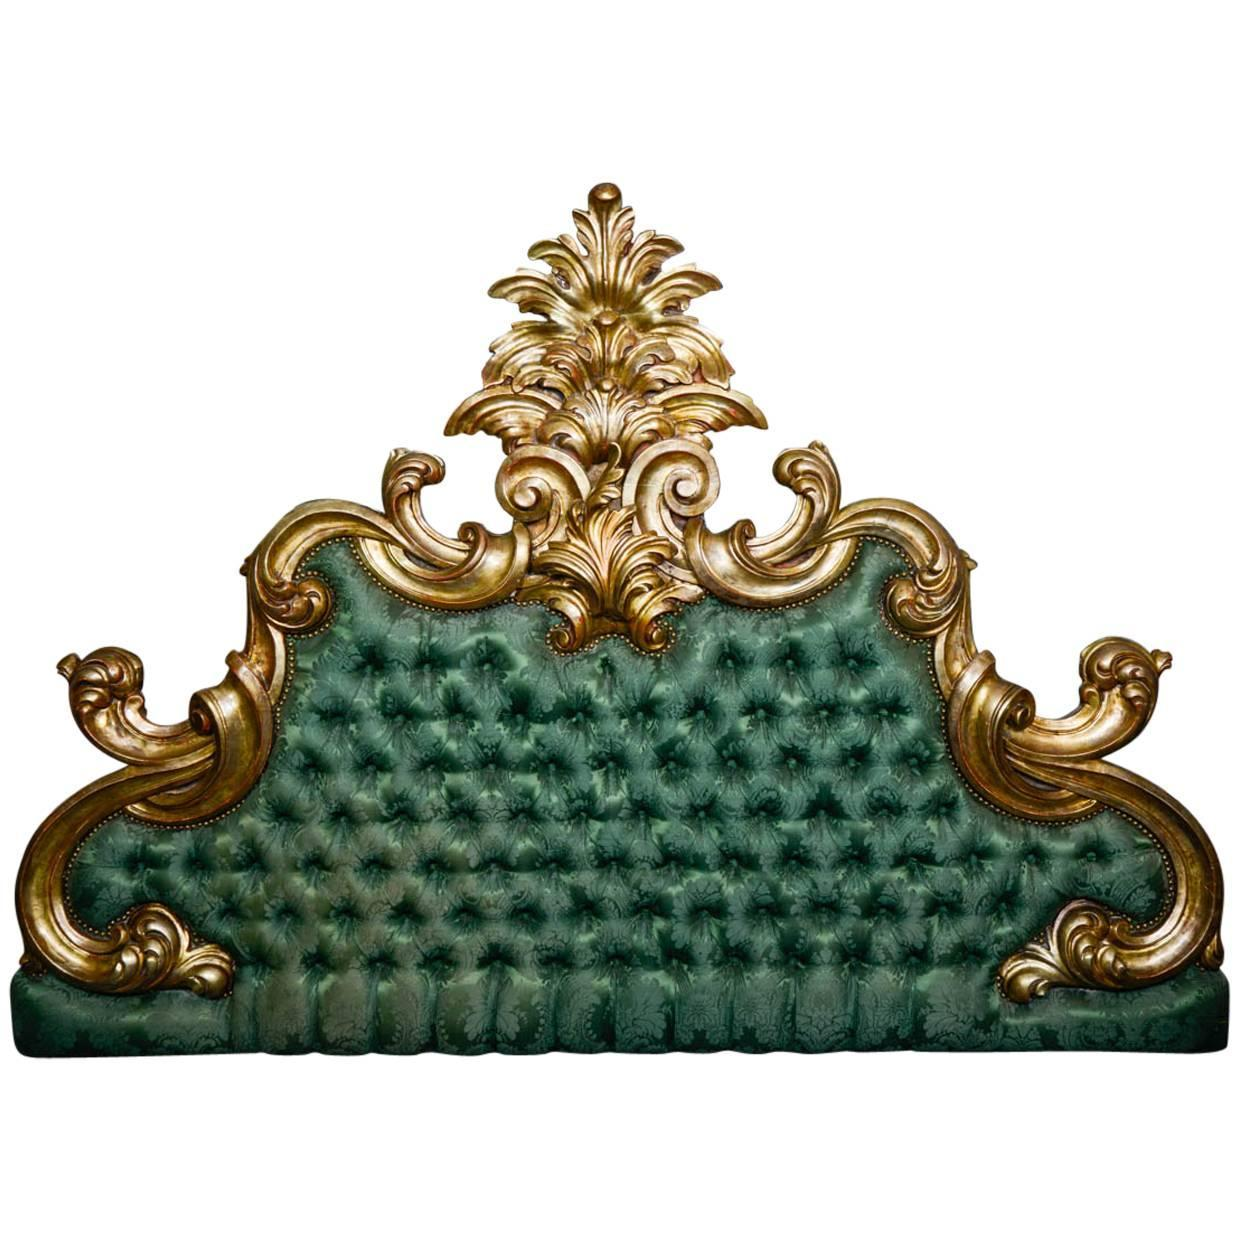 Gilded wood head bed baroque style for sale at 1stdibs for Baroque style bed